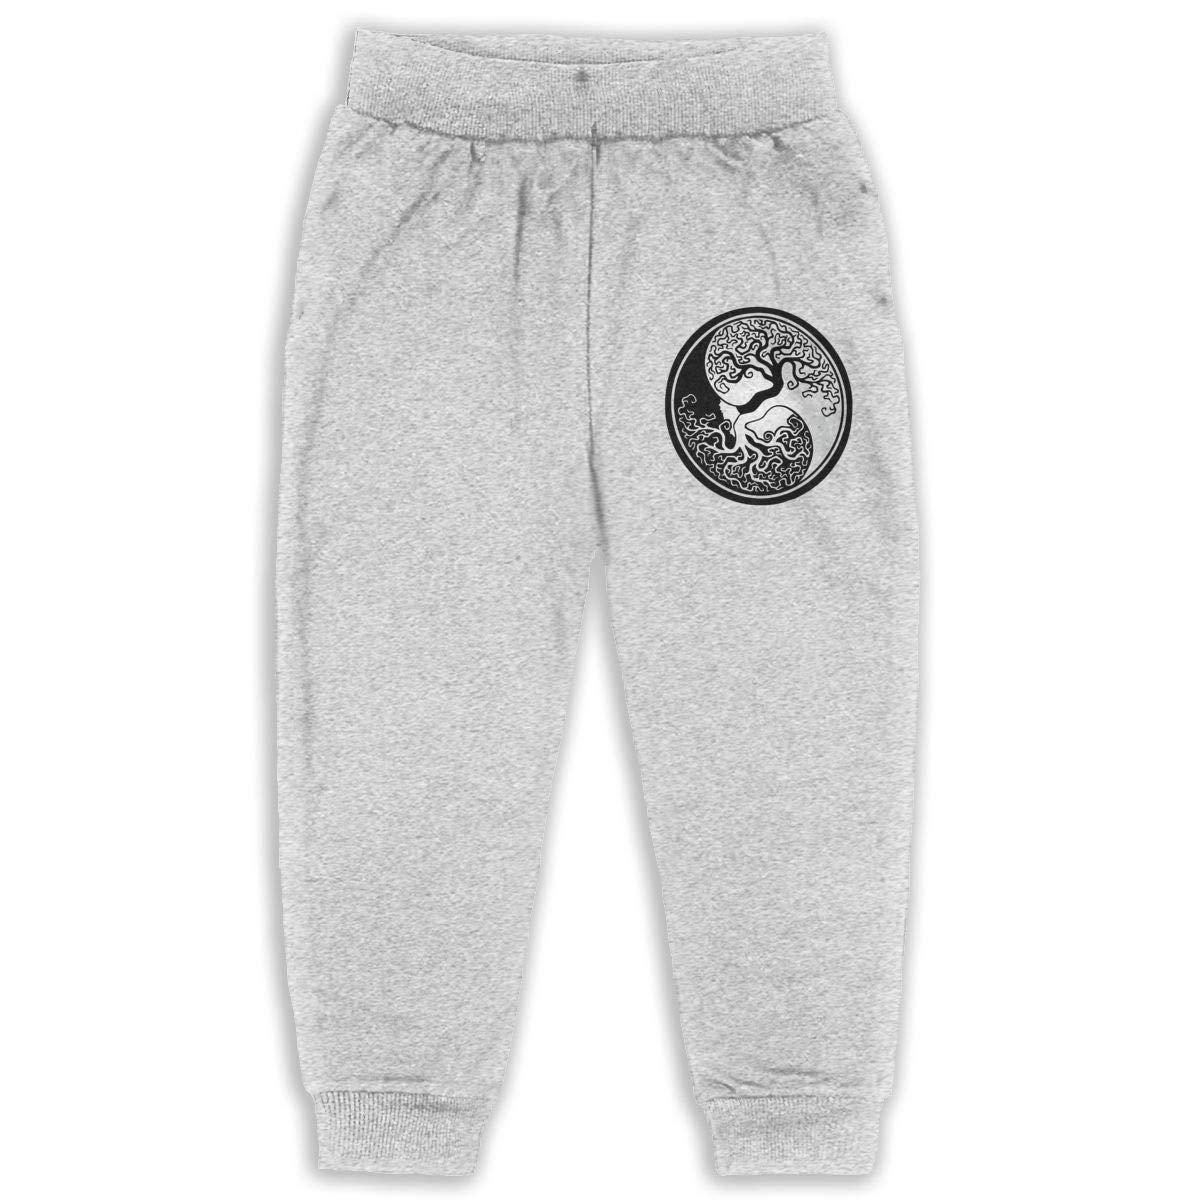 Tree of Life Yin Yang Kids Cotton Sweatpants,Jogger Long Jersey Sweatpants